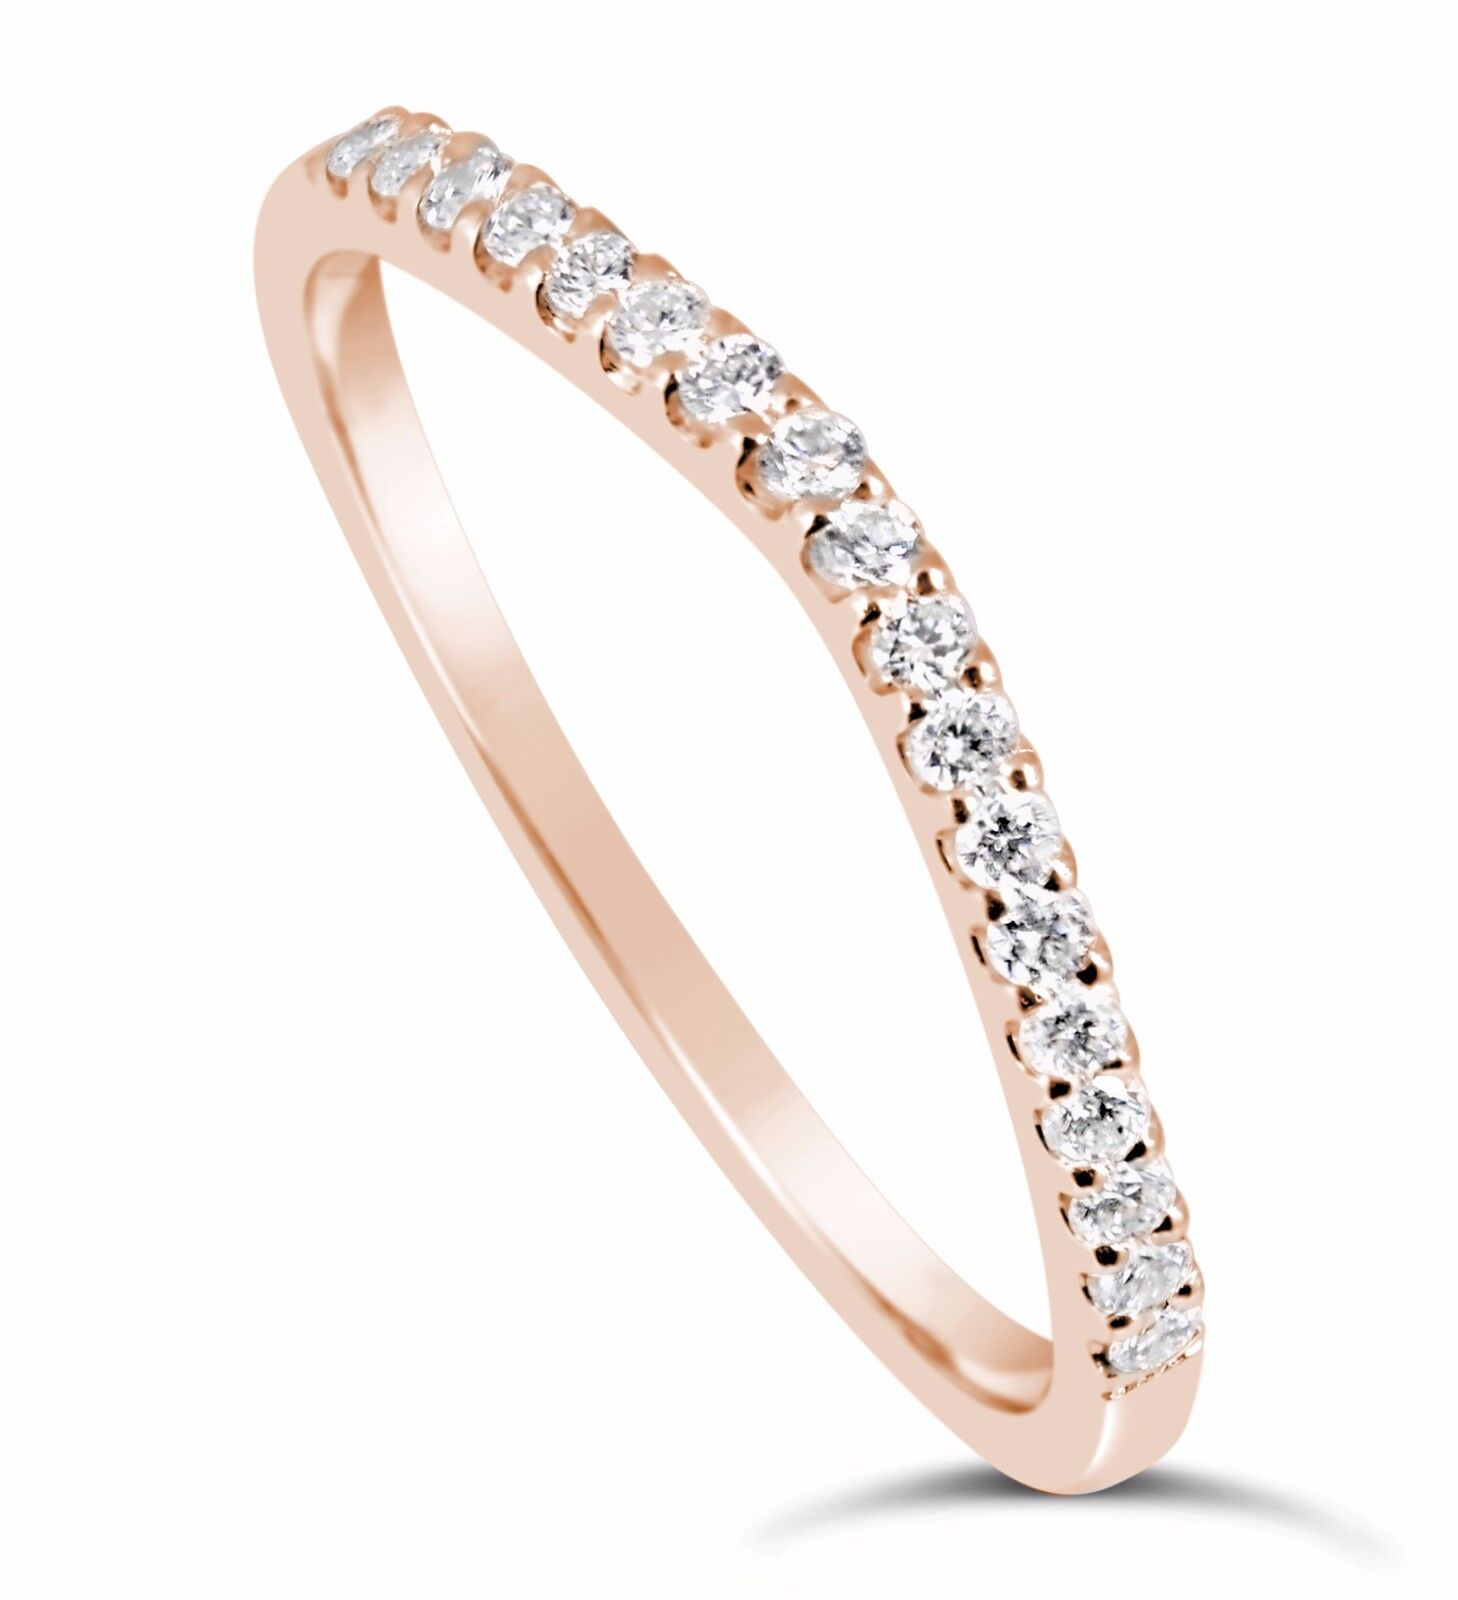 14k Rose Gold Simulated Diamond Wedding Band Ring Curved ...